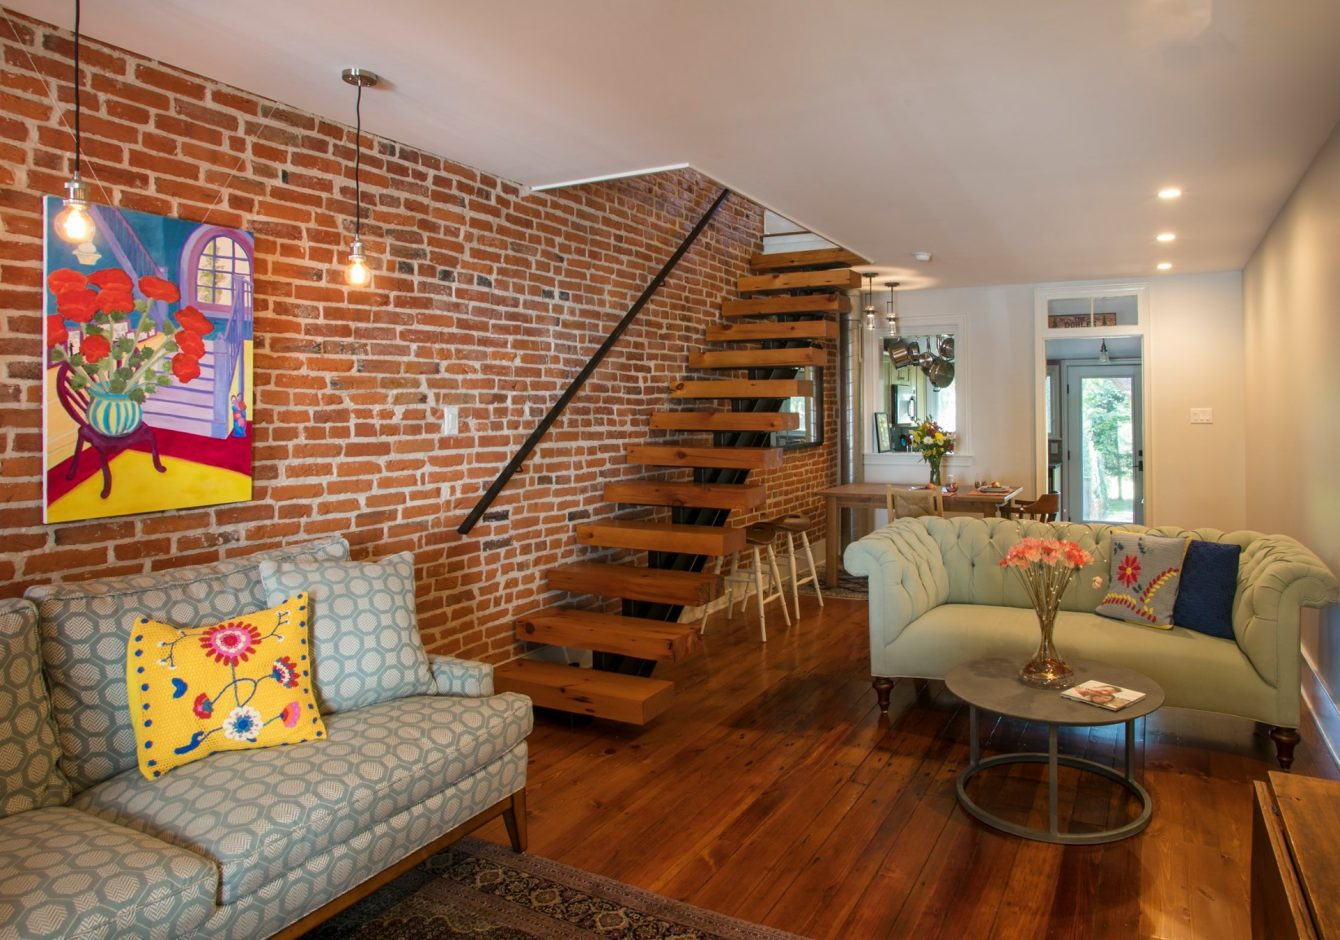 """Brick Beauty""- Doylestown Borough Whole House Renovation"